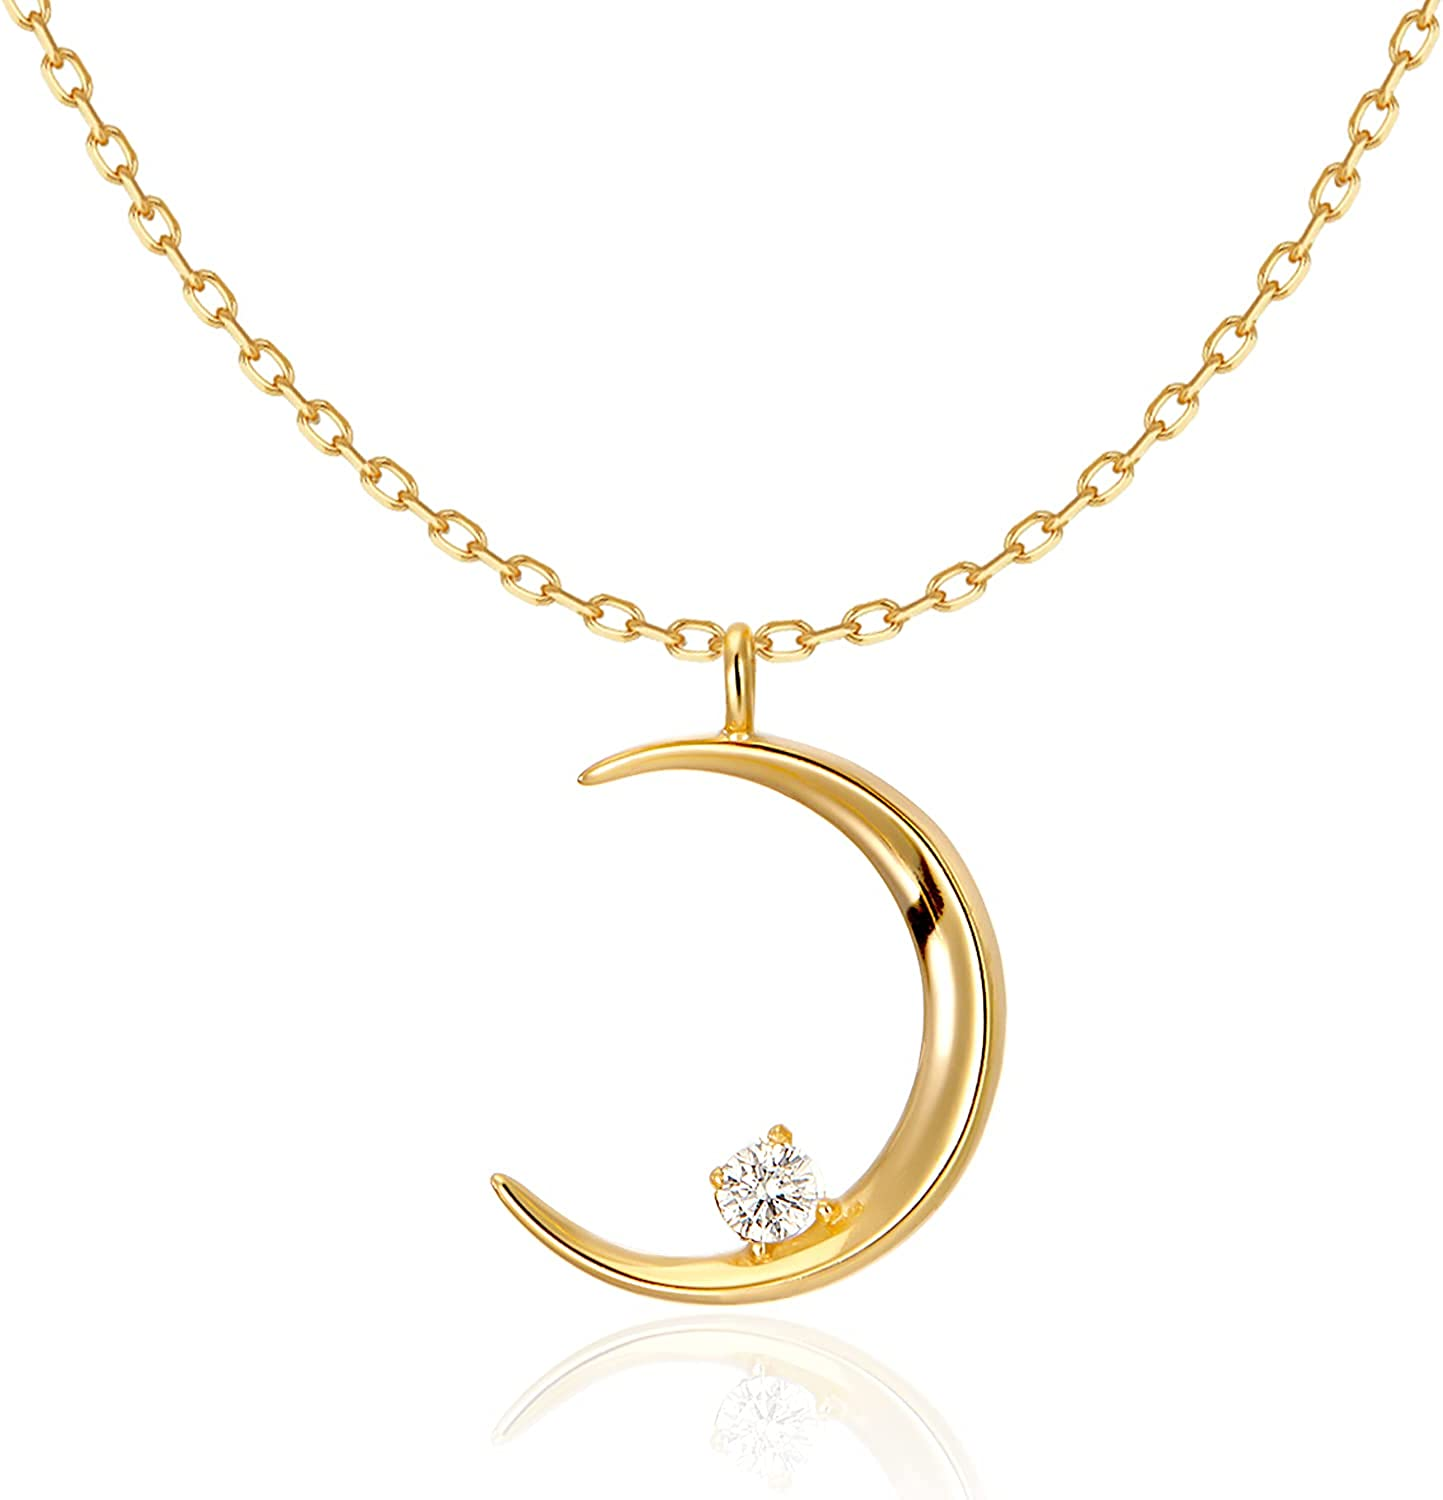 T TOSSINY 18K Gold Plated Moon Chain Necklace Crystal Pendant Charm Adjustable Cute Dainty Dangle Jewelry For Women Girls Mom For Her Gifts